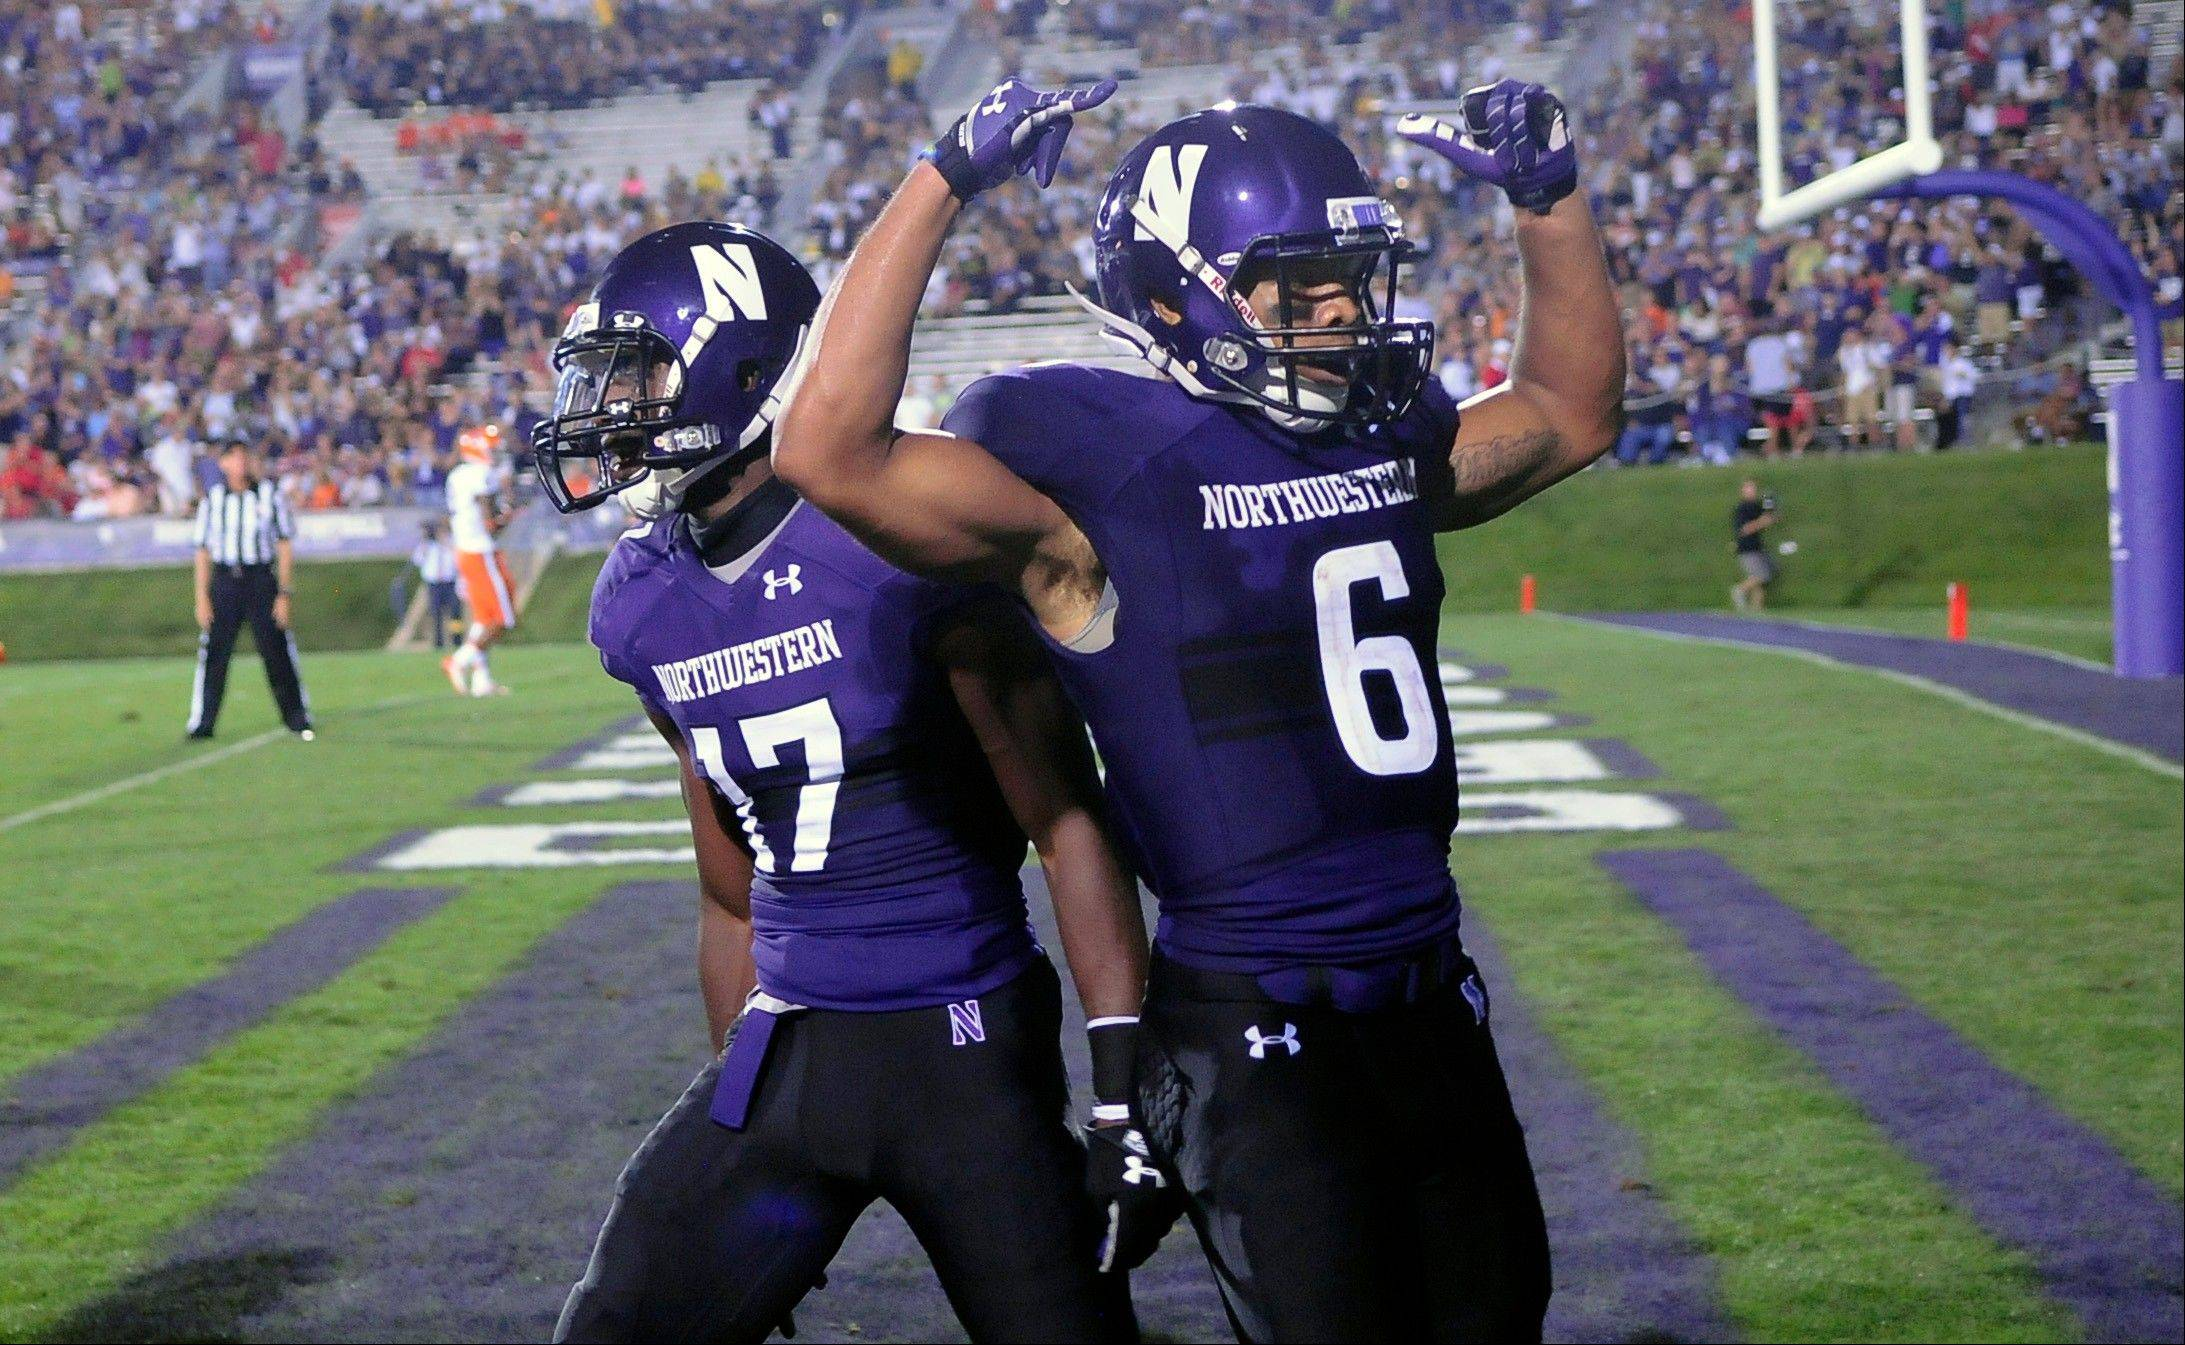 Northwestern's Tony Jones, (6), celebrates his touchdown with teammate Rashad Lawrence, (17) in the second half of an NCAA college football game against Syracuse University in Evanston, Ill, Saturday, Sept.7, 2013